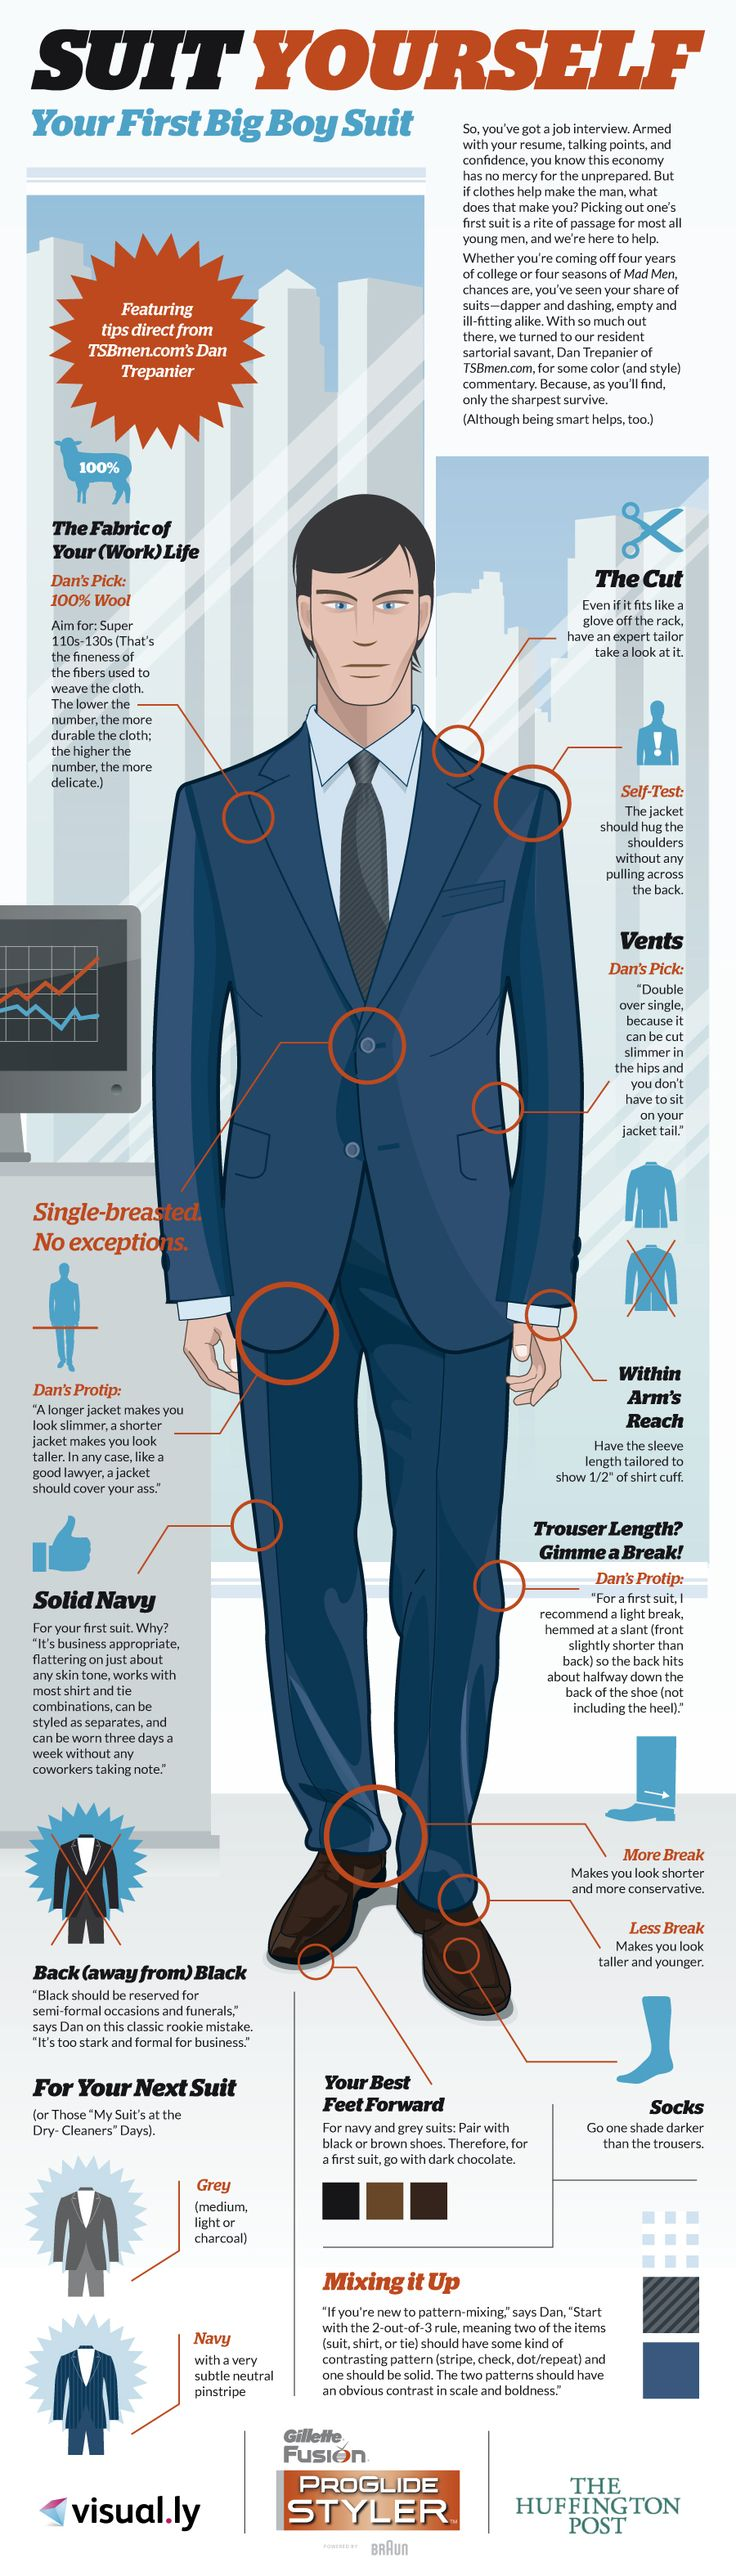 Suit Yourself; Your First Big Boy Suit (infographic) | The Roosevelts